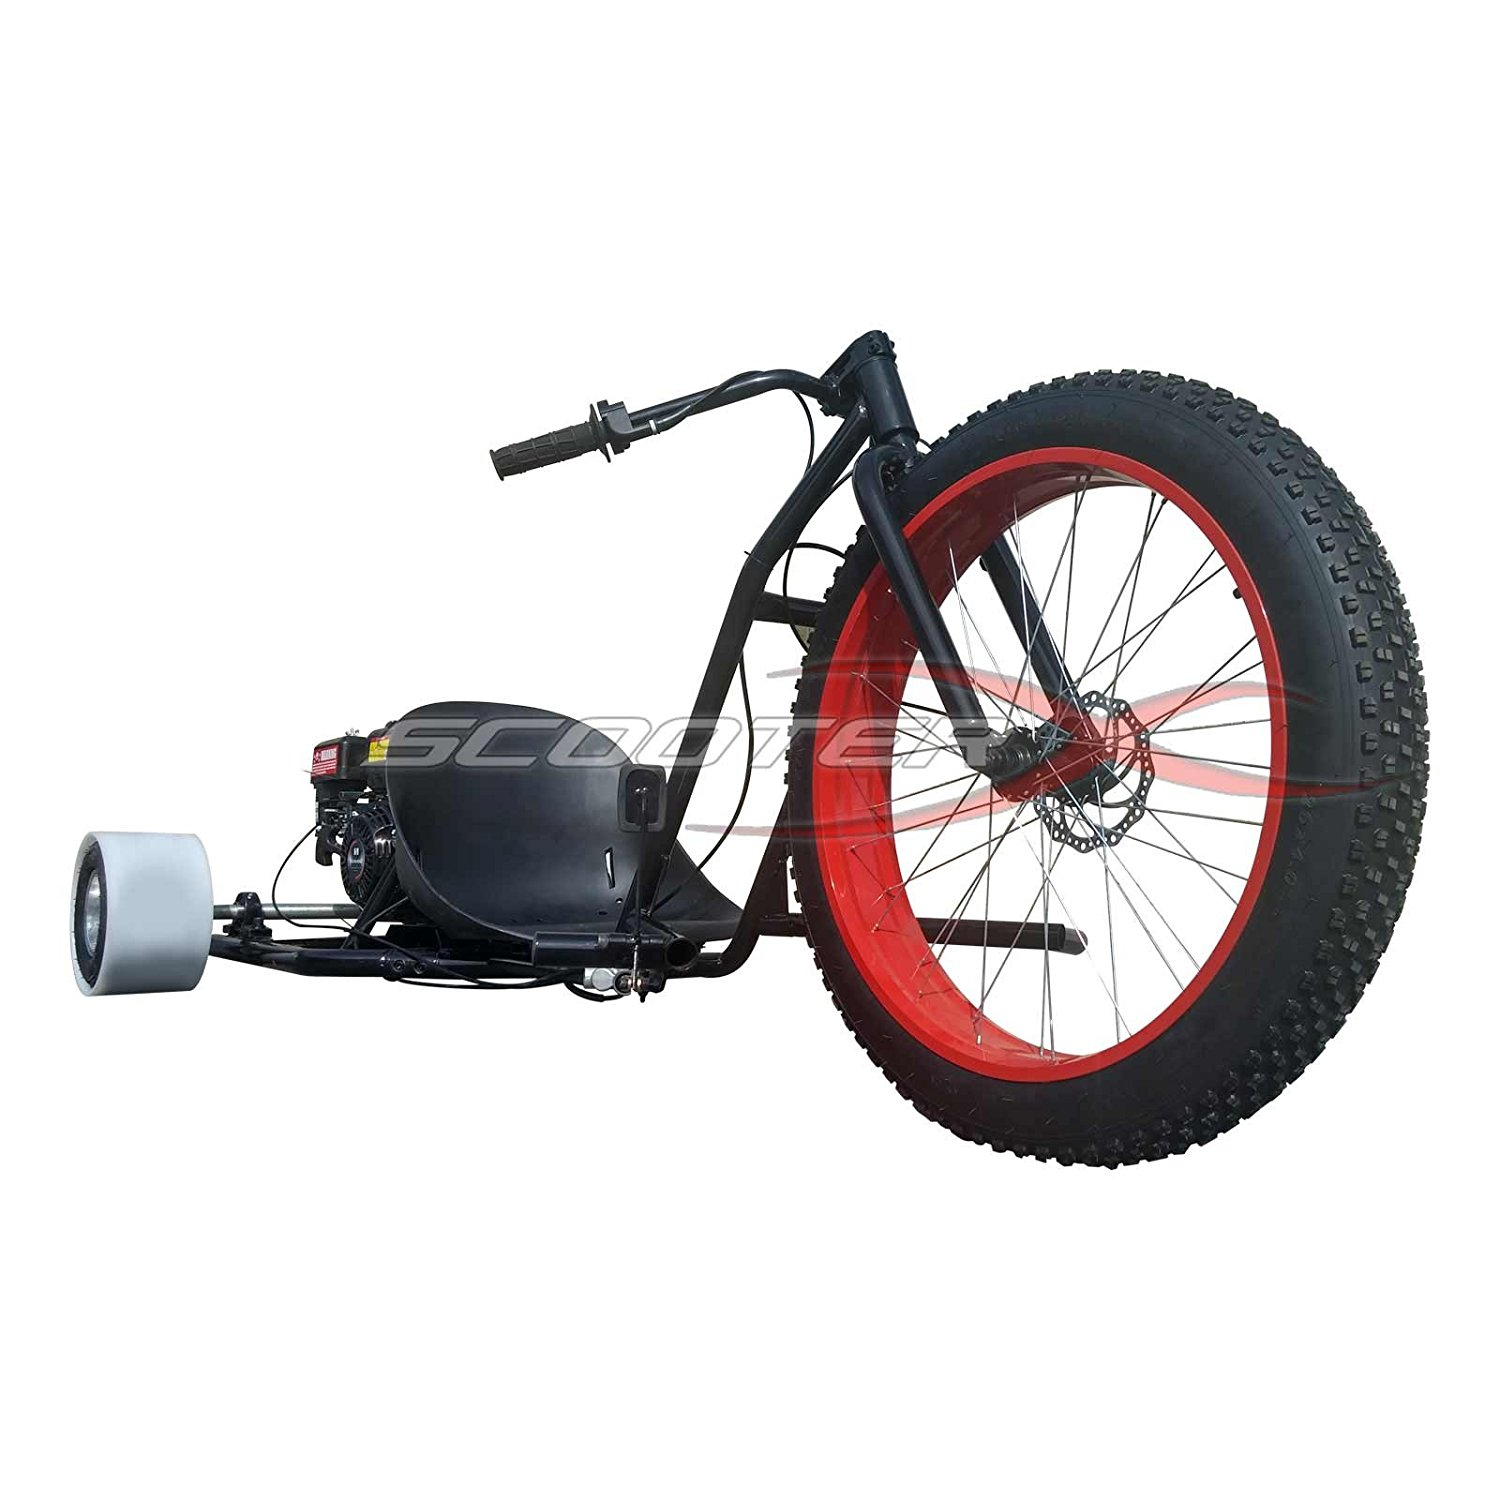 Amazon.com : ScooterX Drifter 6.5hp 196cc Drift Trike Drifting Go ...